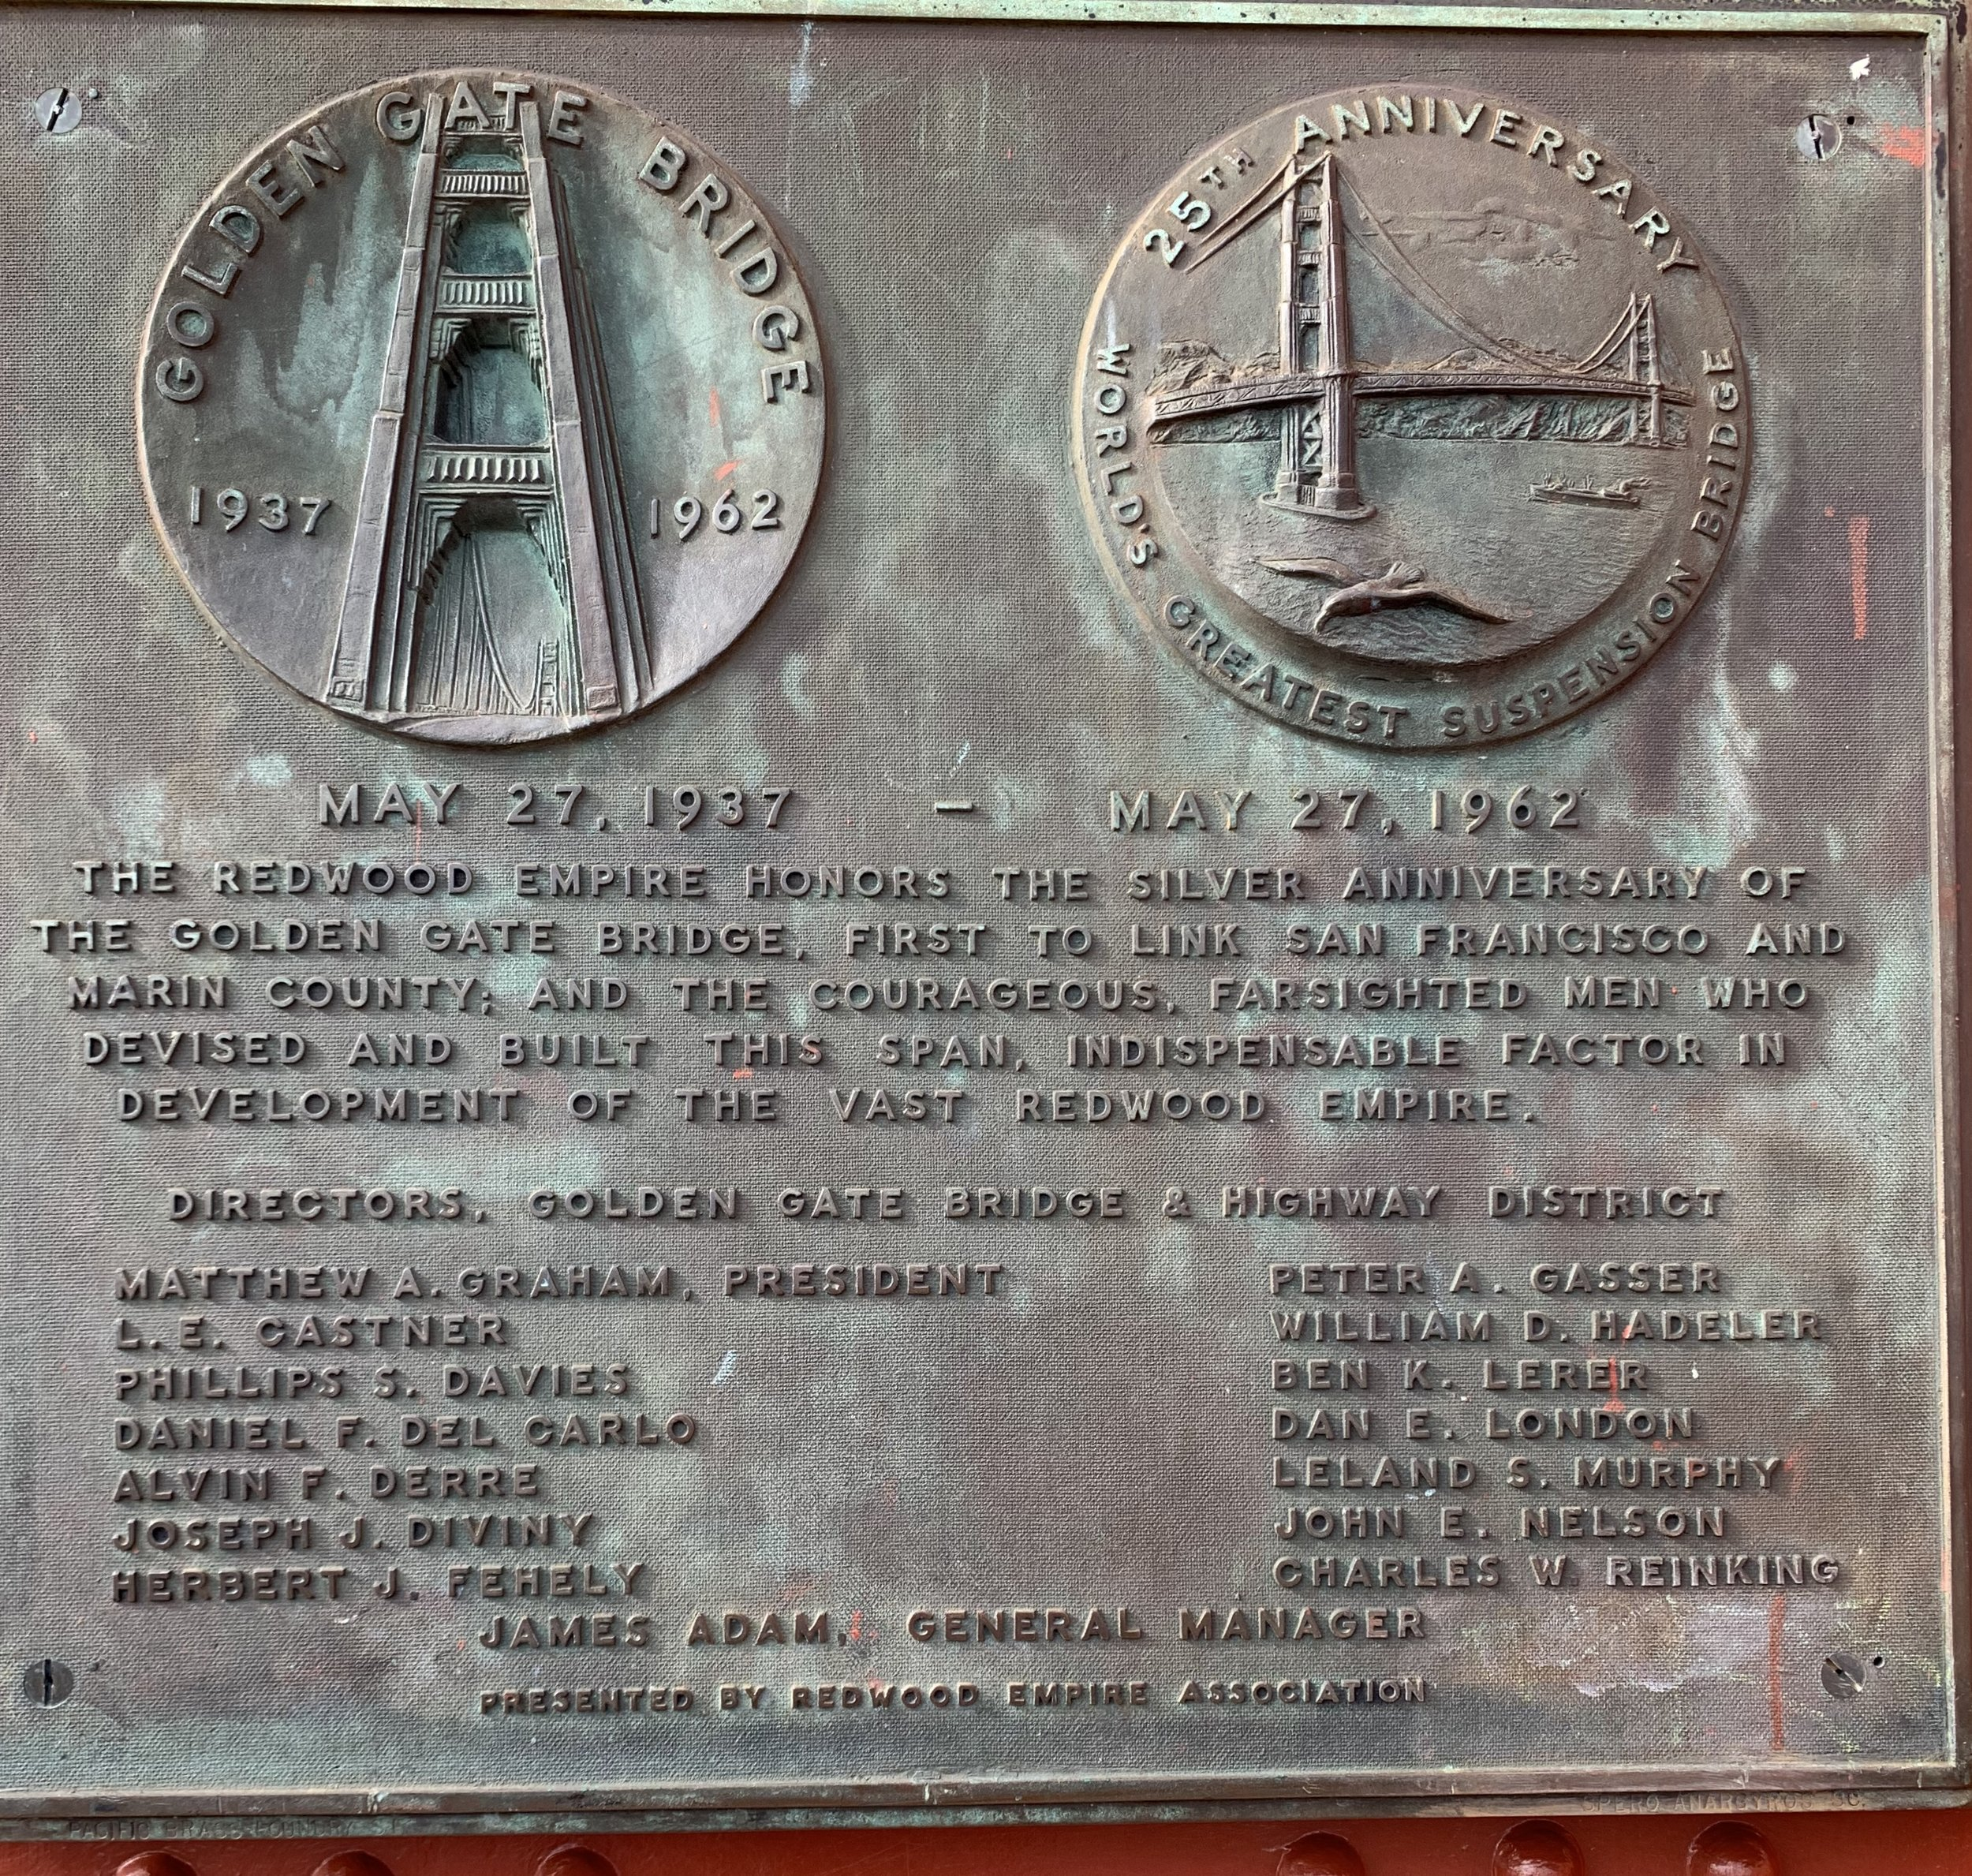 A commemorative plaque that sits at the center of the bridge.